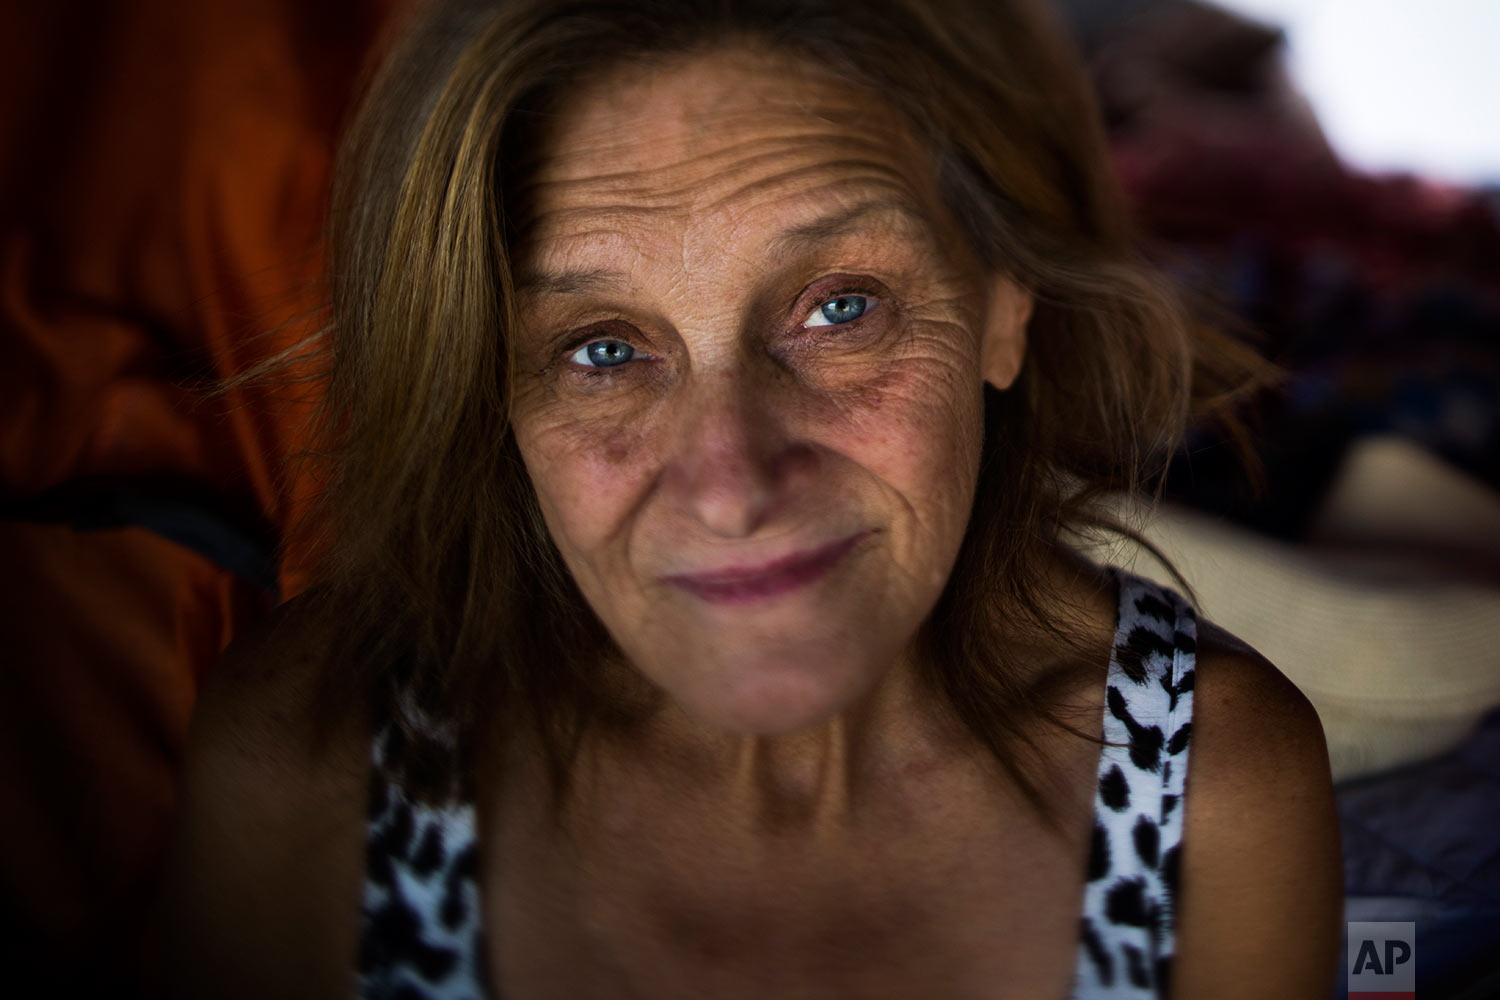 """Tammy Stephen, 54, pauses for photos Tuesday, Sept. 26, 2017, in Seattle. Stephen lives in Camp Second Chance, a city-sanctioned homeless encampment in Seattle. """"Housing here is out of control. That's why we have so many people on the street,"""" she said. """"There's nowhere for them to go."""" (AP Photo/Jae C. Hong)"""